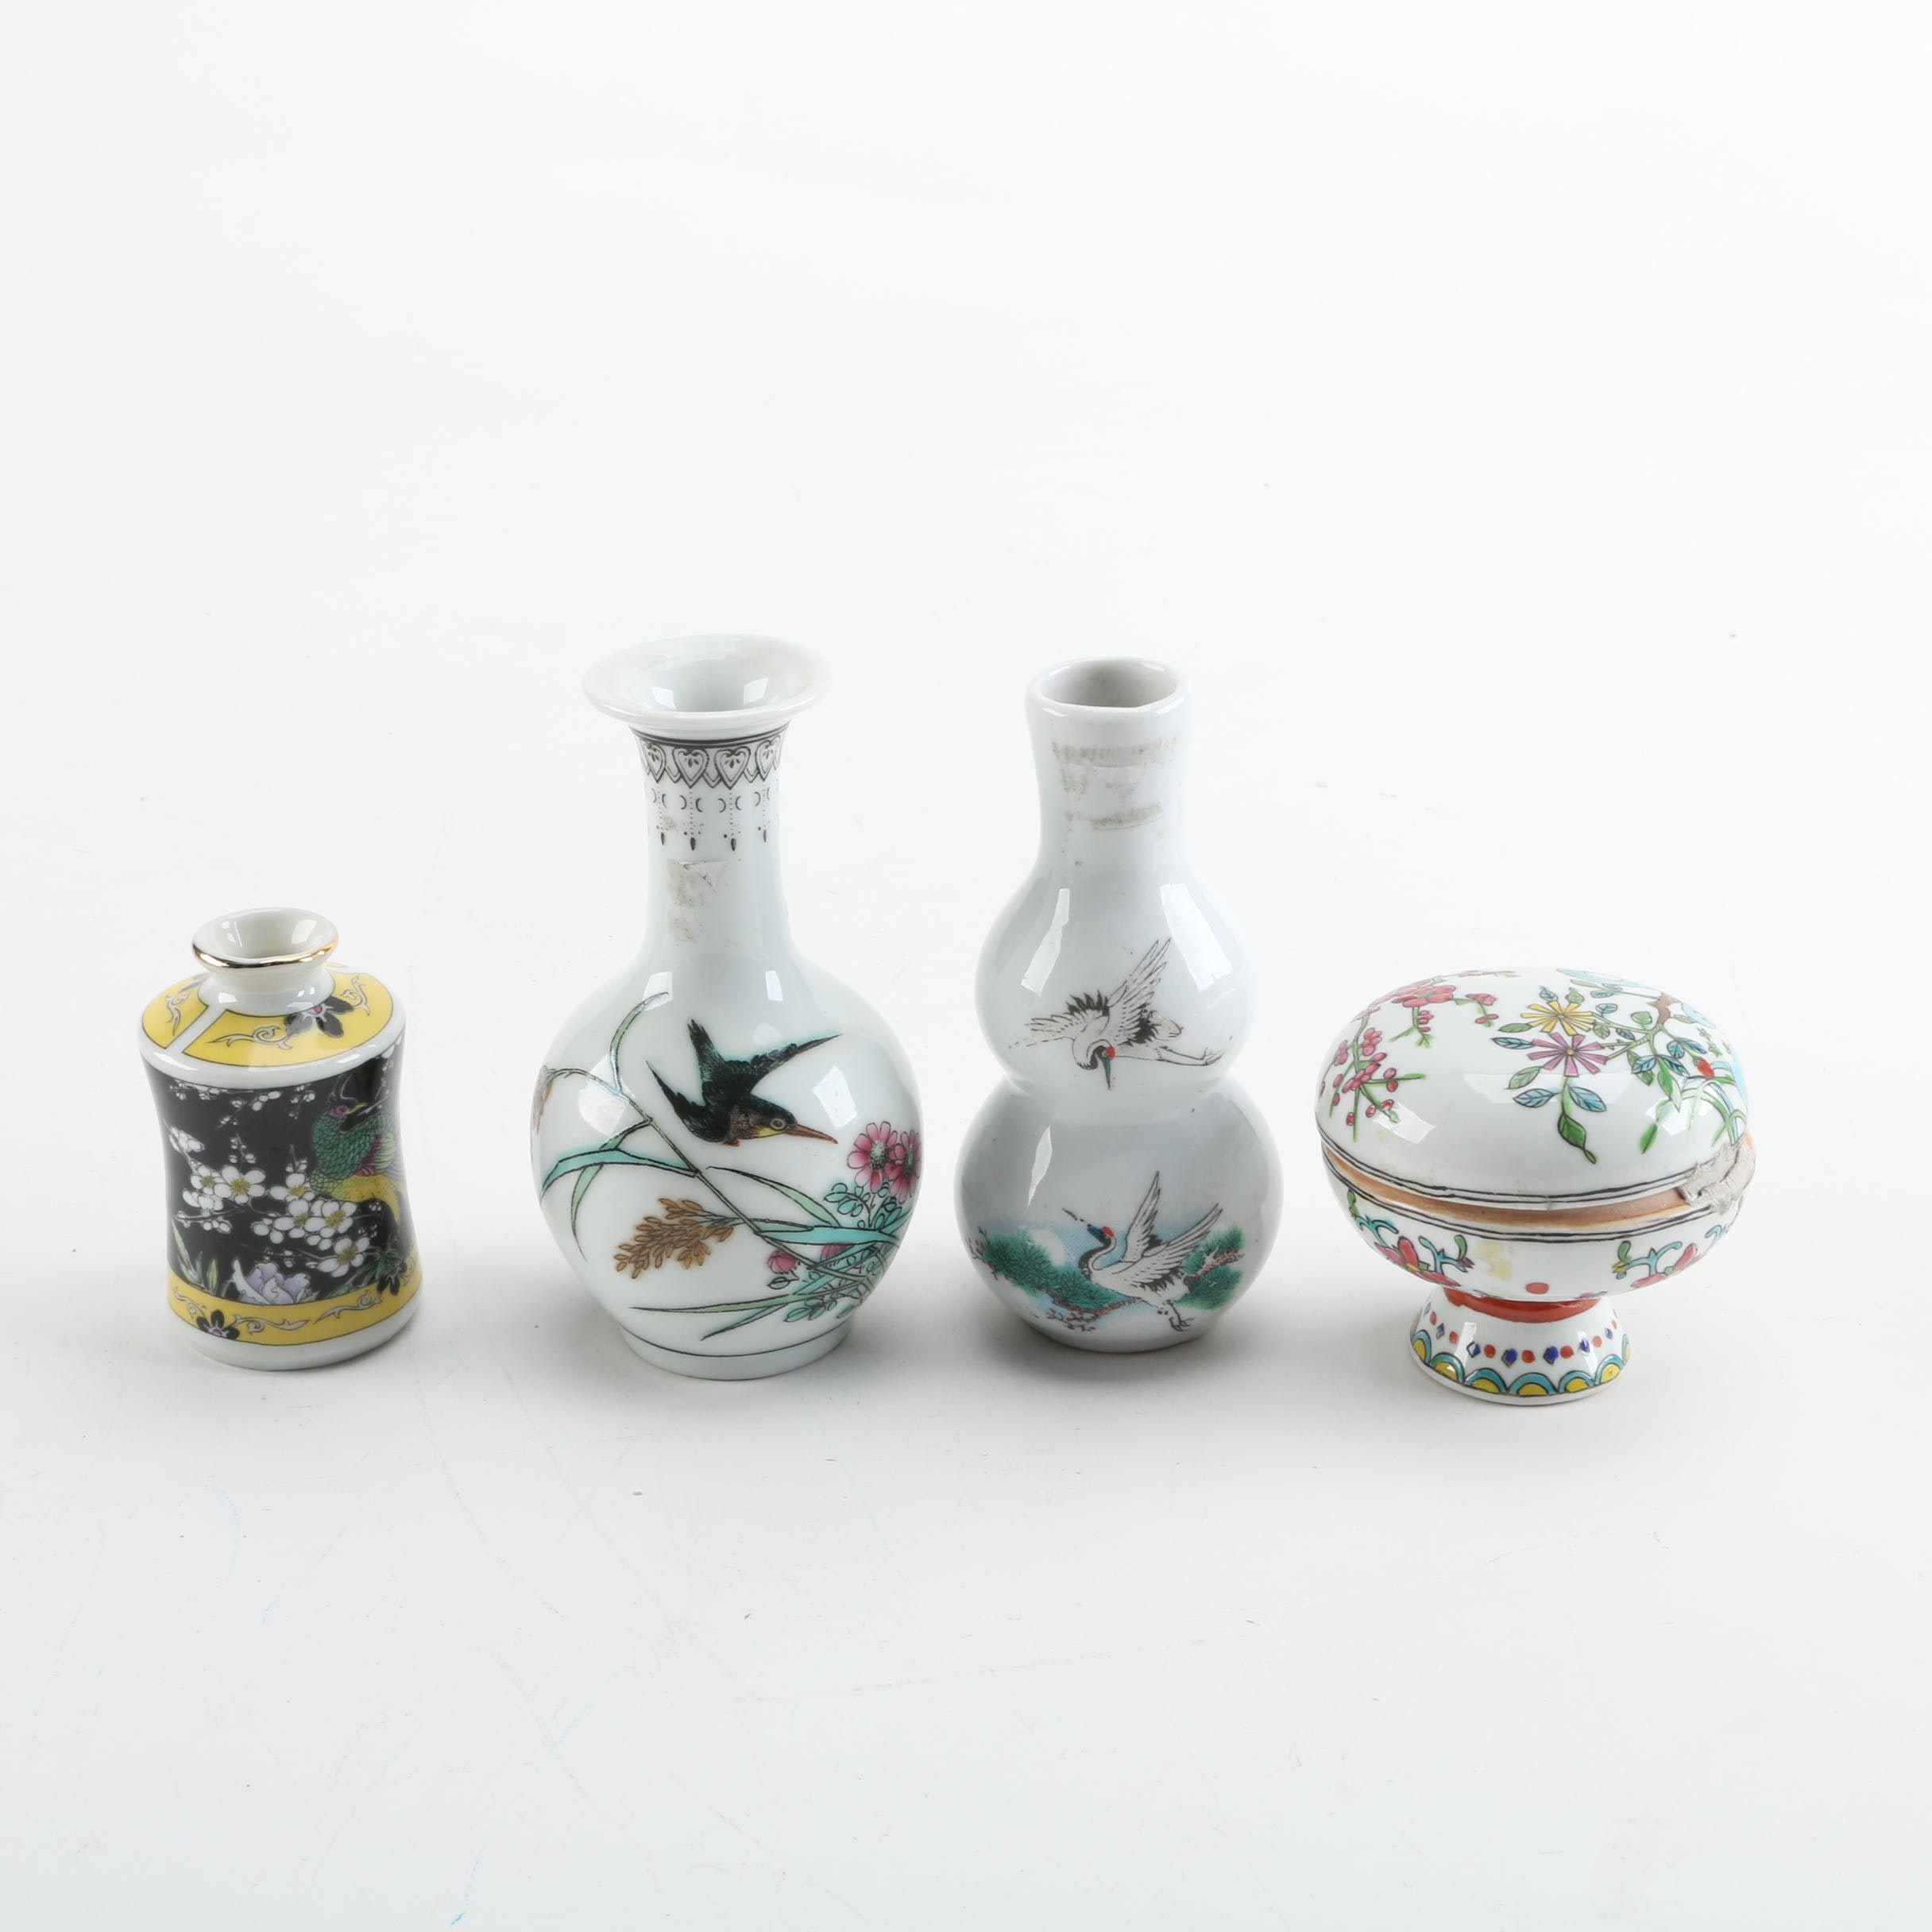 Hand-Painted Ceramic Vases and Trinket Box